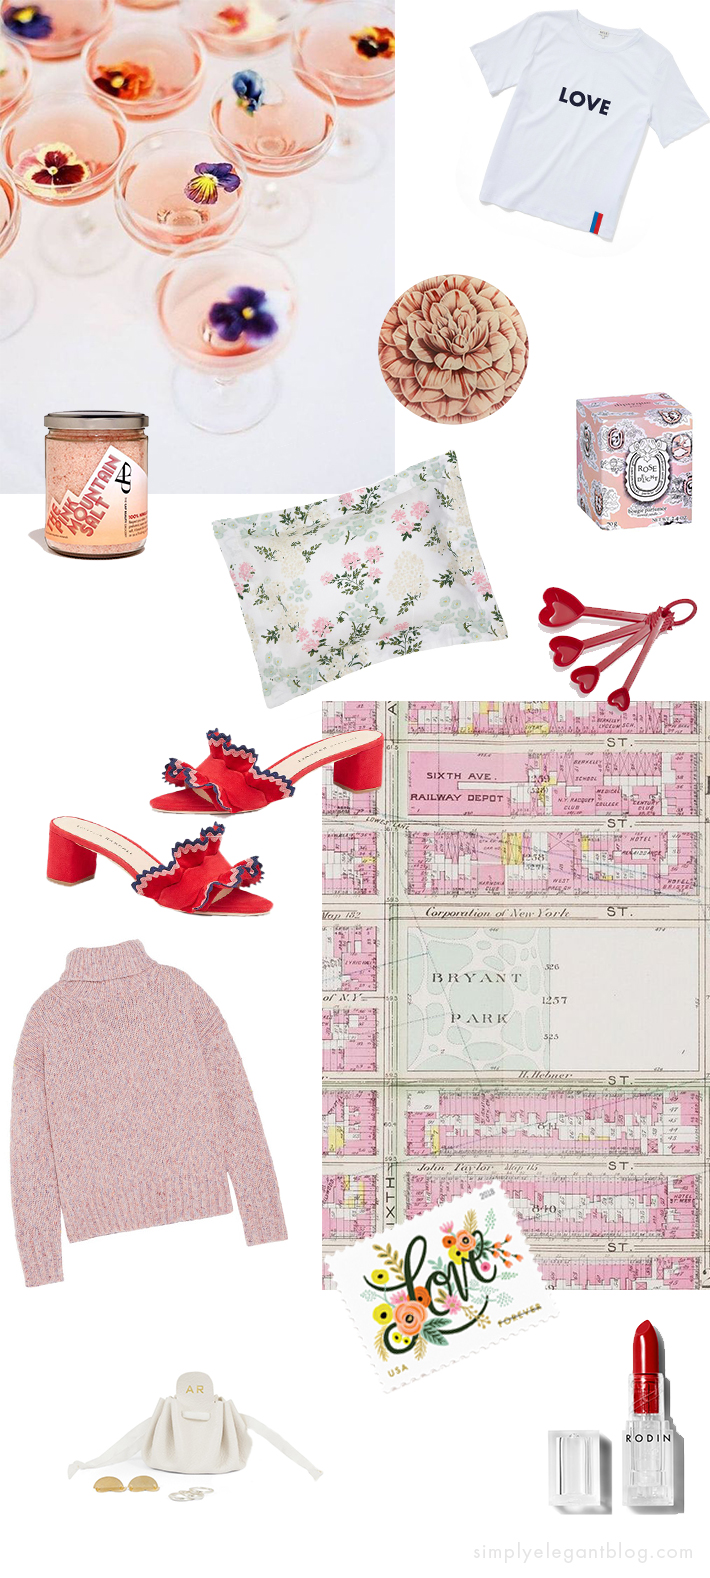 Valentines Day Gifts - Loeffler Randal Ruffle, Rifle Paper Co Love Stamps, JCrew